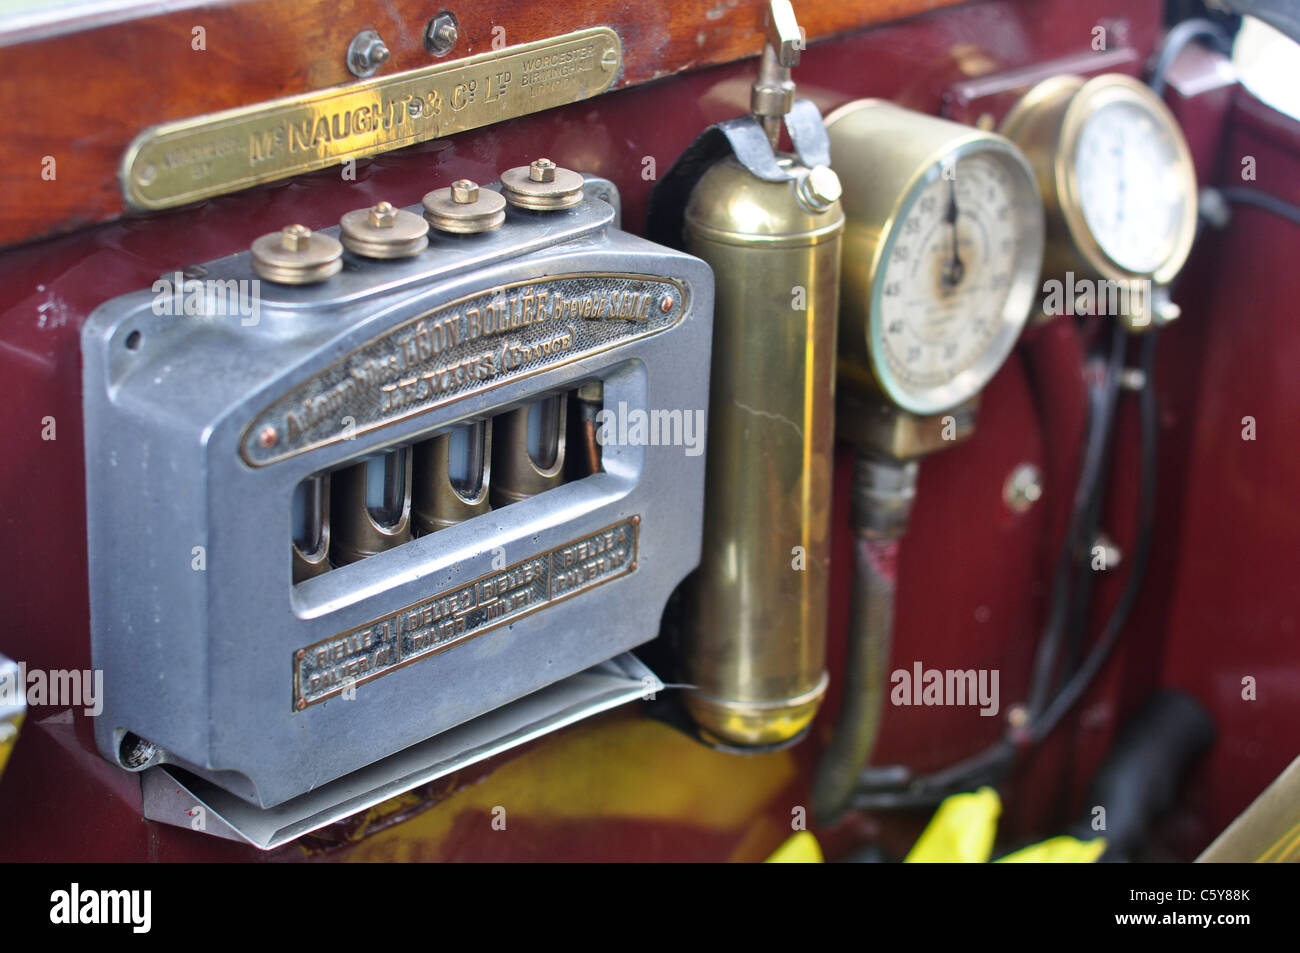 Dash board from a 1910 classic car, various dials and gauges, with a shallow depth of field - Stock Image